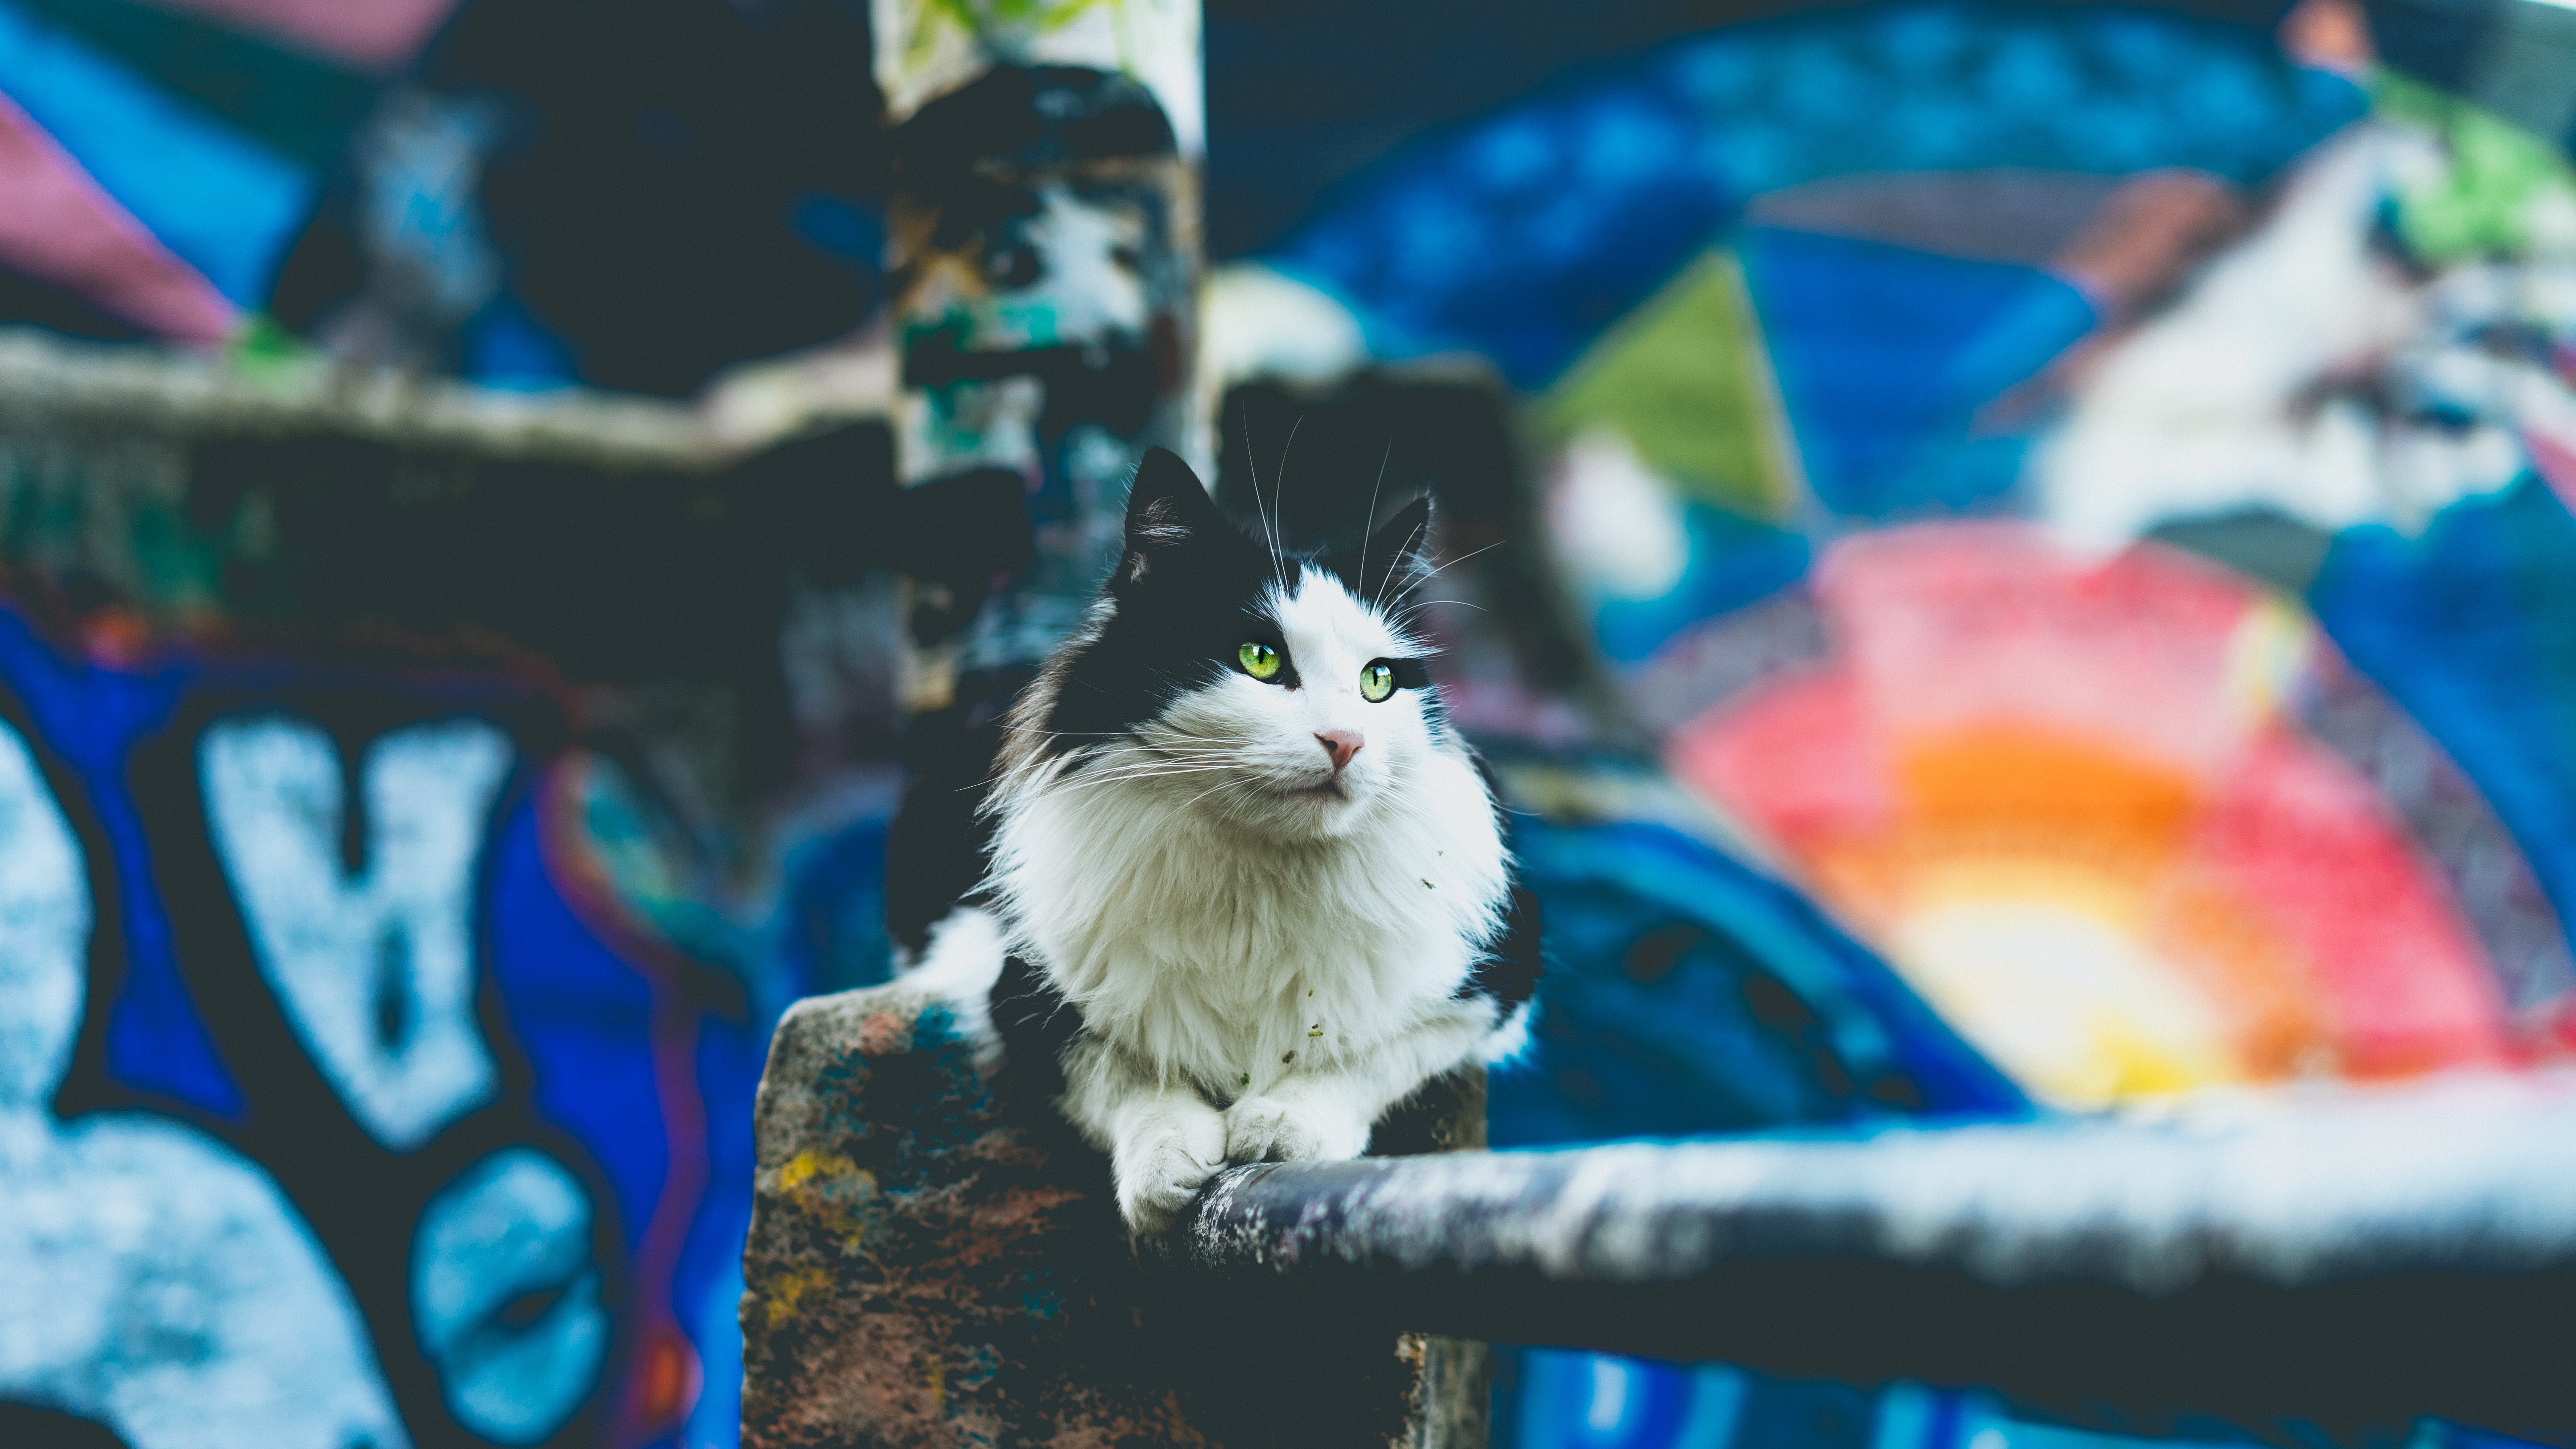 Black and white cat sitting on handrail with colorful graffiti street art mural in background